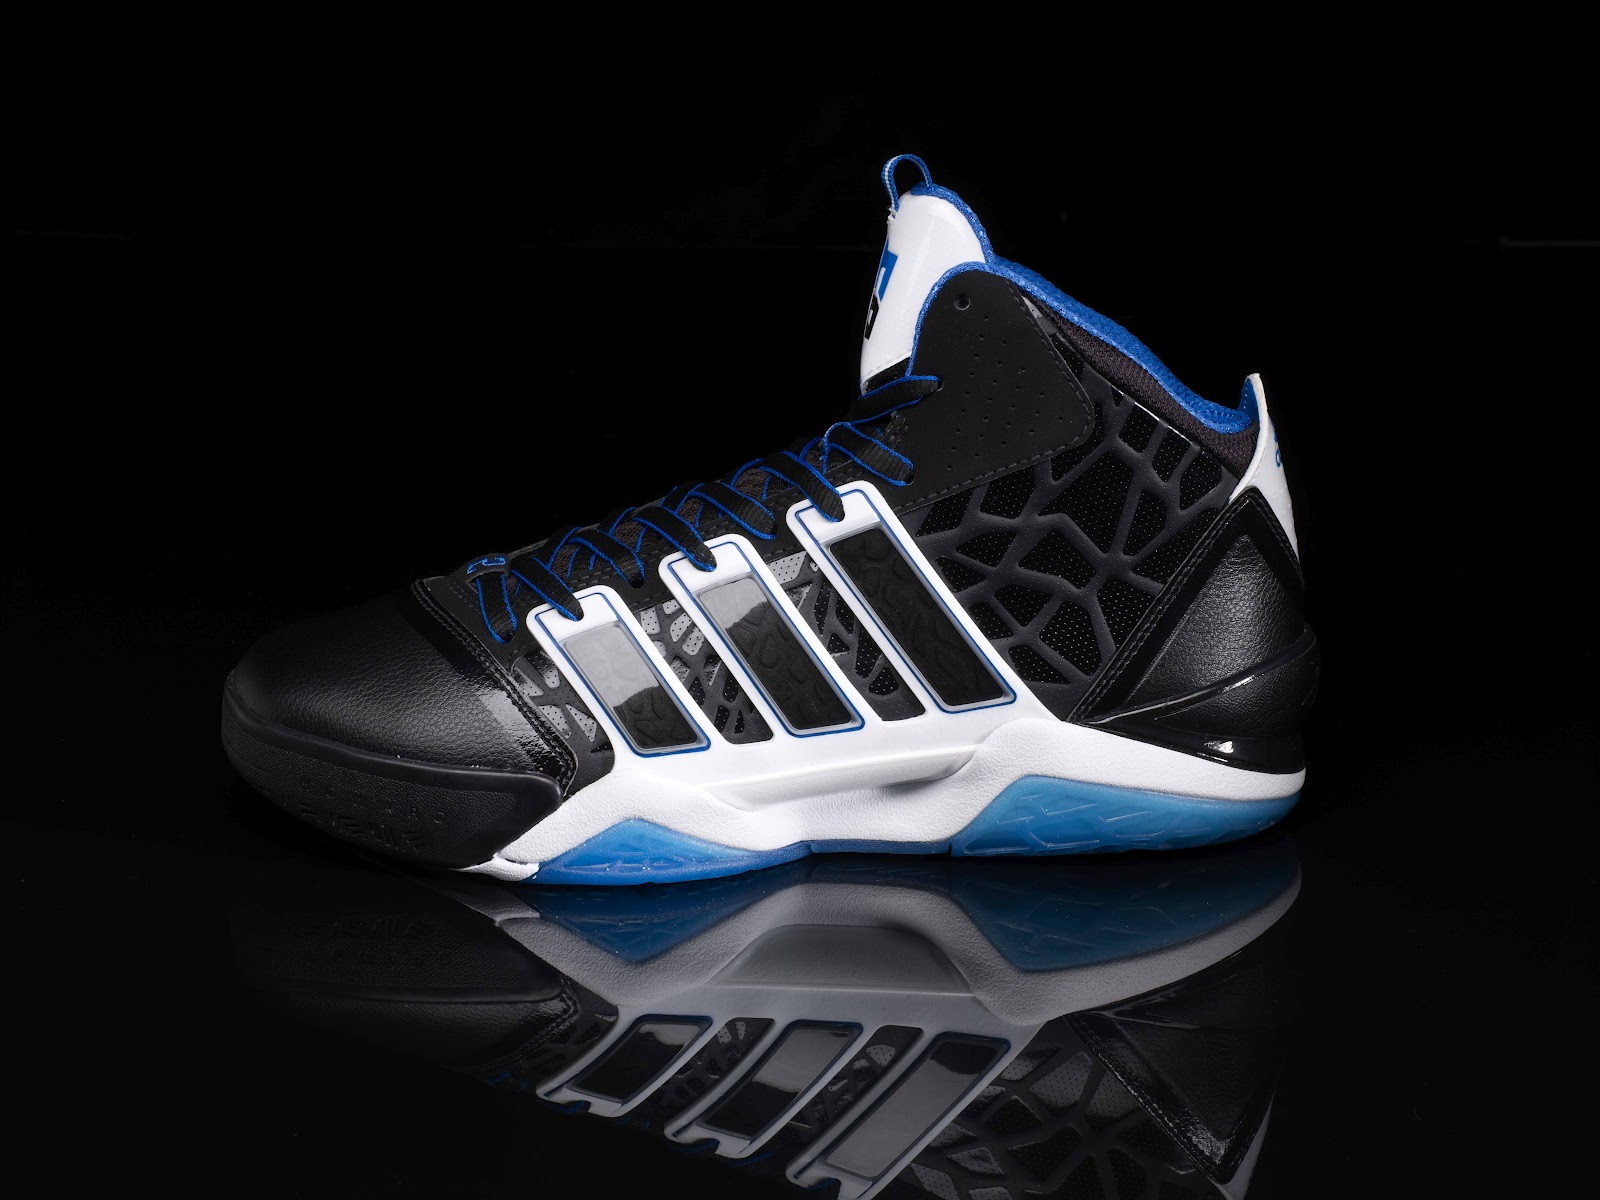 adidas dwight howard shoes 2012